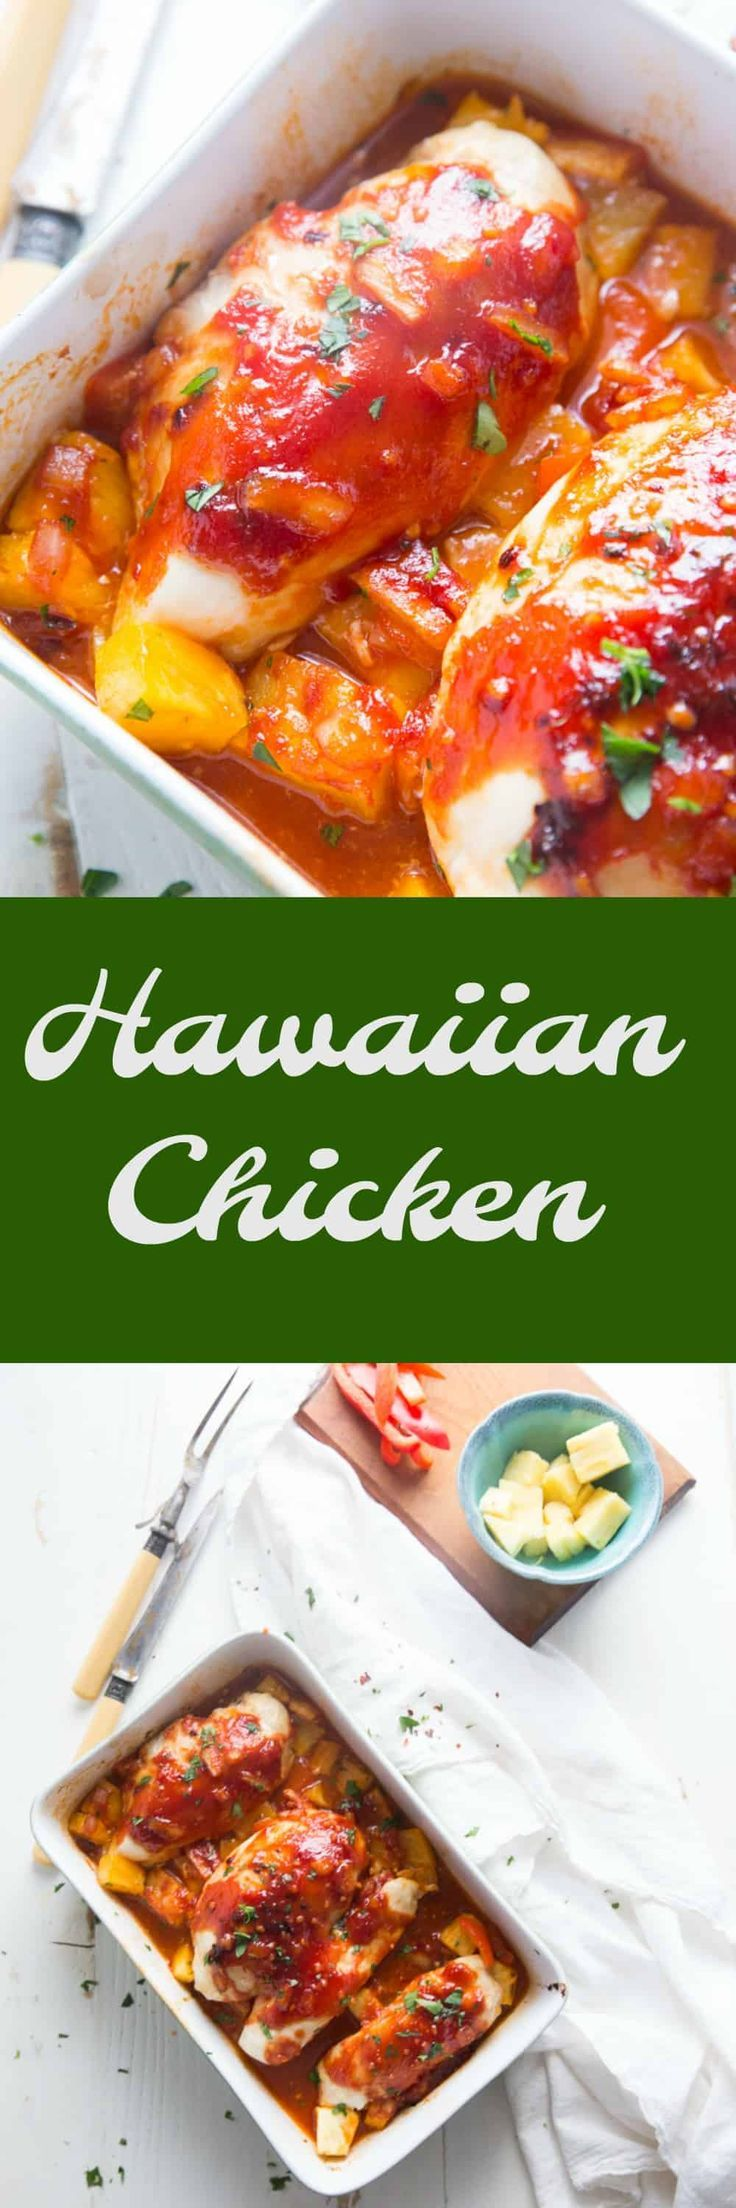 This Hawaiian Chicken starts with fresh pineapple and peppers that gets covered in a tangy sauce that is sweet and fragrant. This dish is mood altering! via @Lemonsforlulu #paleo #whole30 #healthy